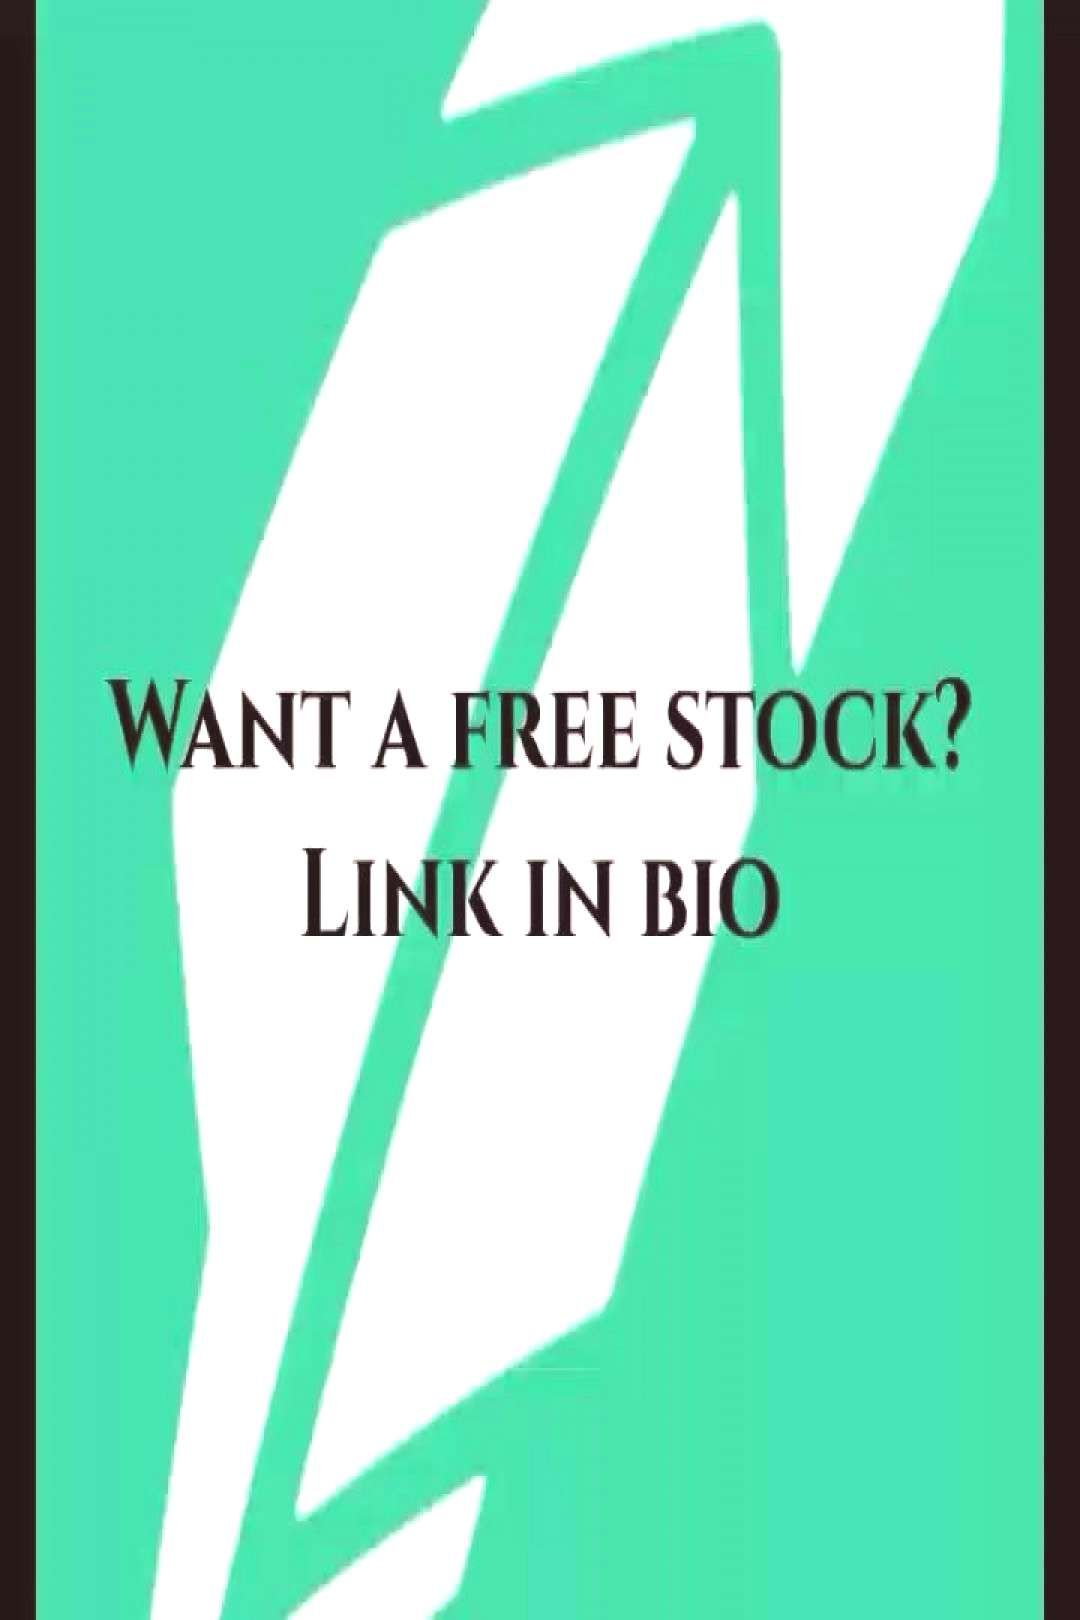 #makingmon #robinhood #stock #using #free #link #get #the #bio #on #in #my #a Get a free stock on Robinhood using the link in my bio #makingmonYou can find Making money on youtube and more on our website.Get a free stock on ...